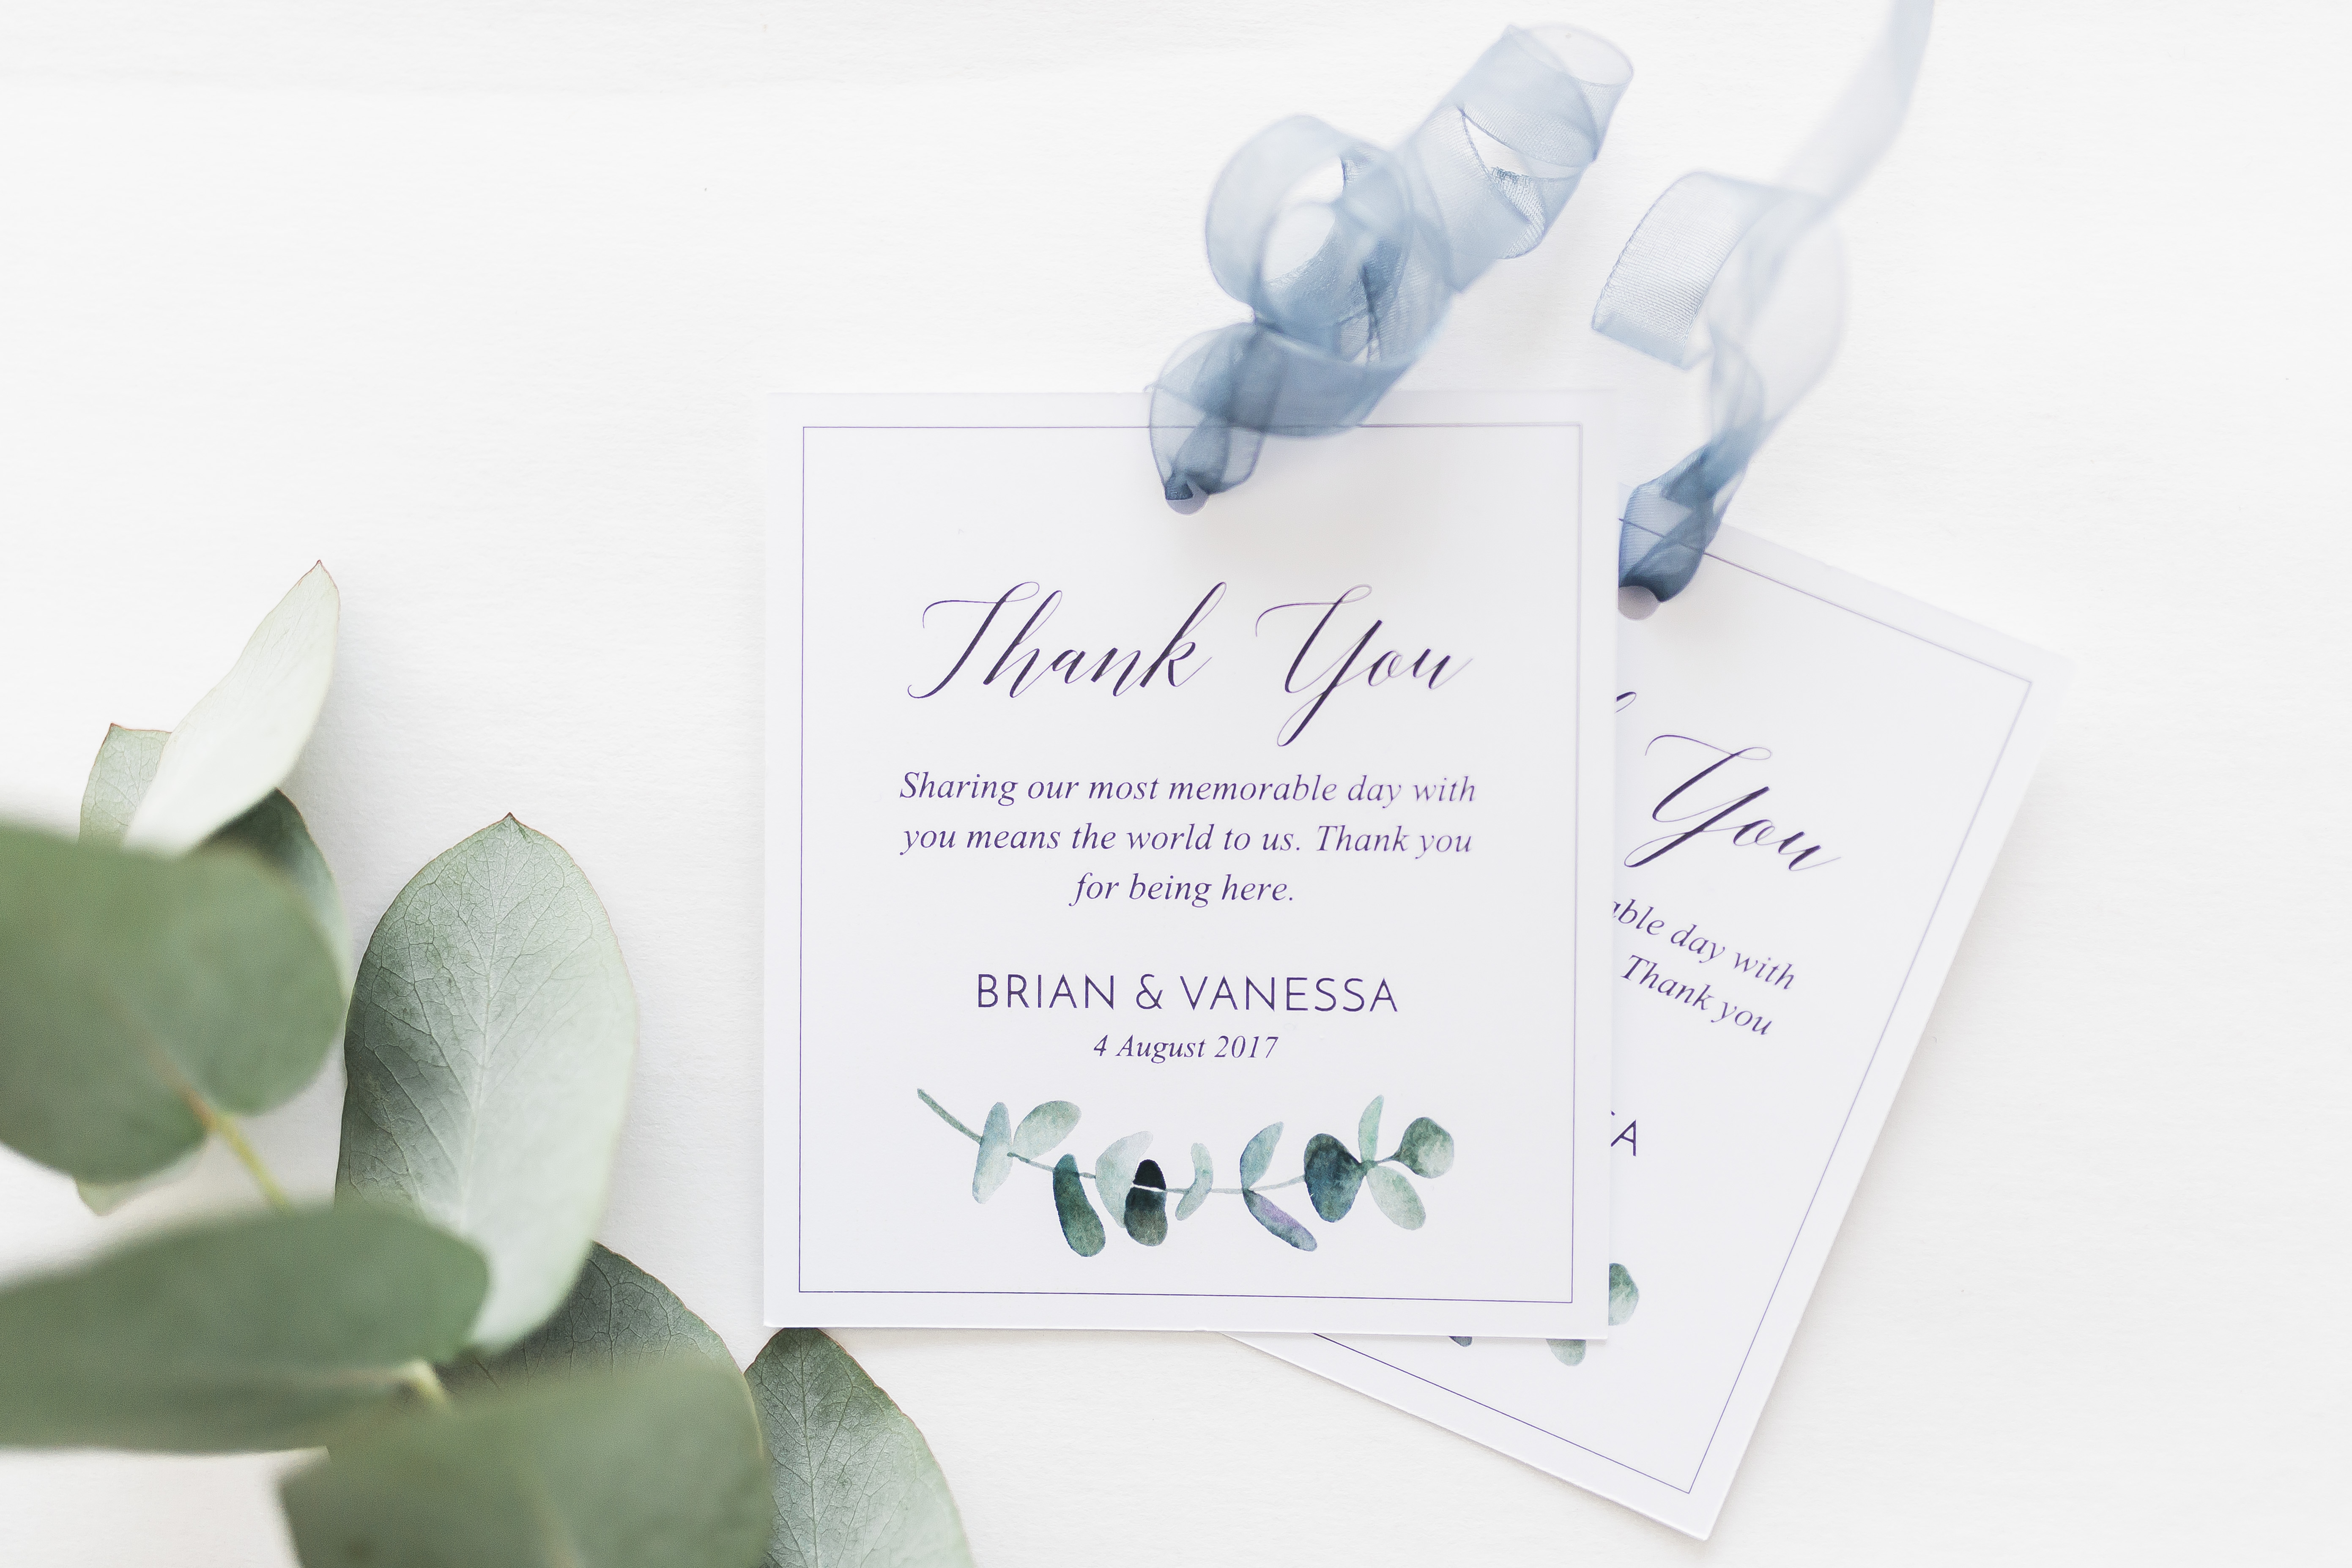 Download These Free Printable Wedding Thank You Tags | Lovilee Blog - Free Printable Wedding Thank You Tags